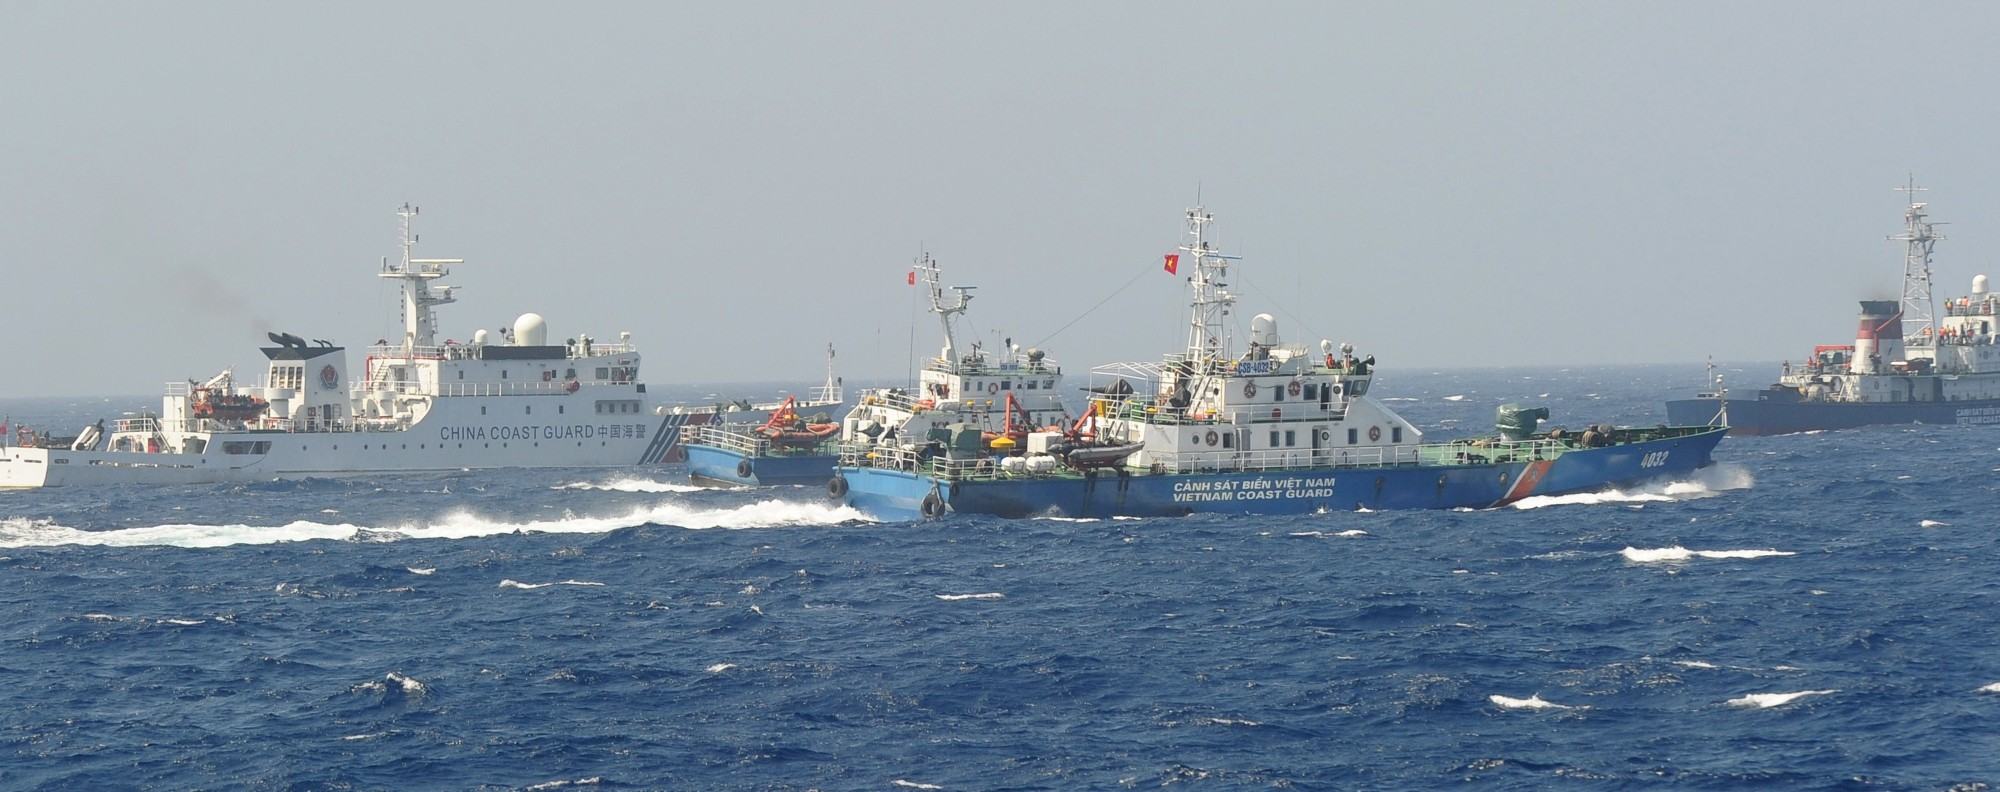 A Chinese coast guard ship being blocked by three Vietnamese coast guard vessels near China's oil drilling rig in disputed waters in the South China Sea. Photo: AFP